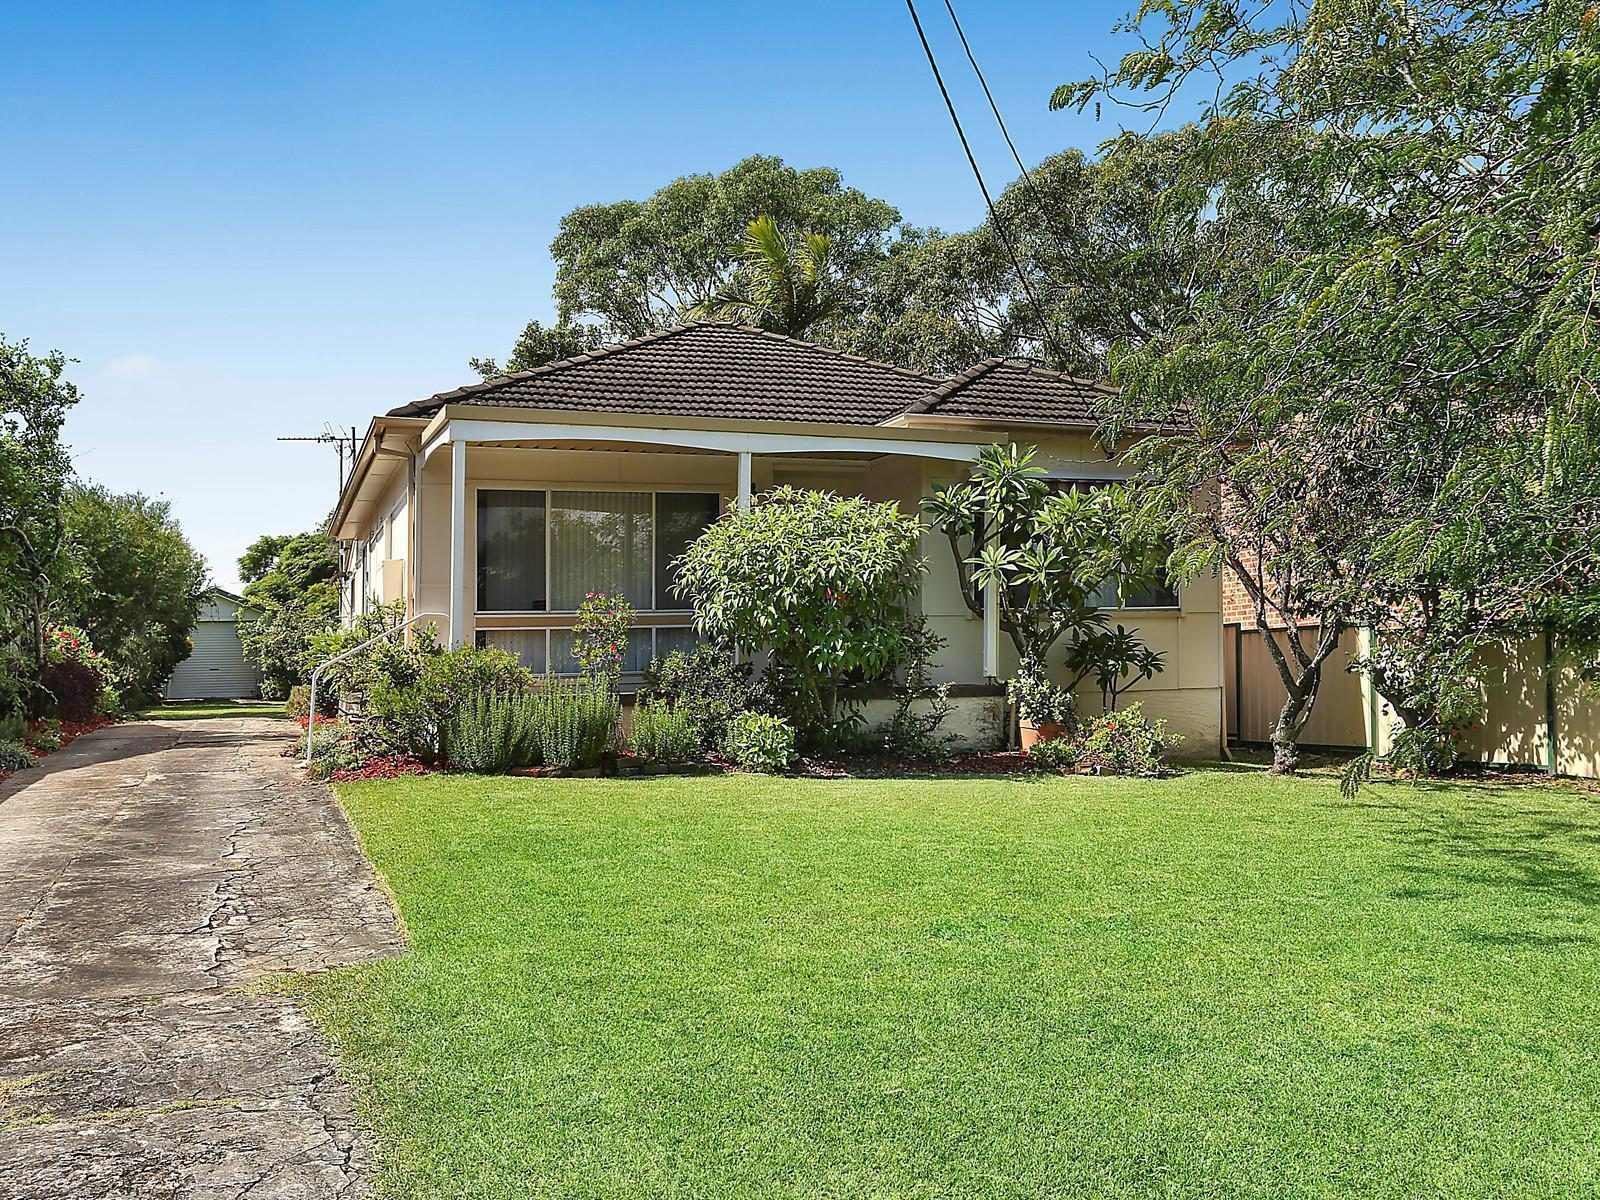 Picture of 22 David Avenue, Caringbah South